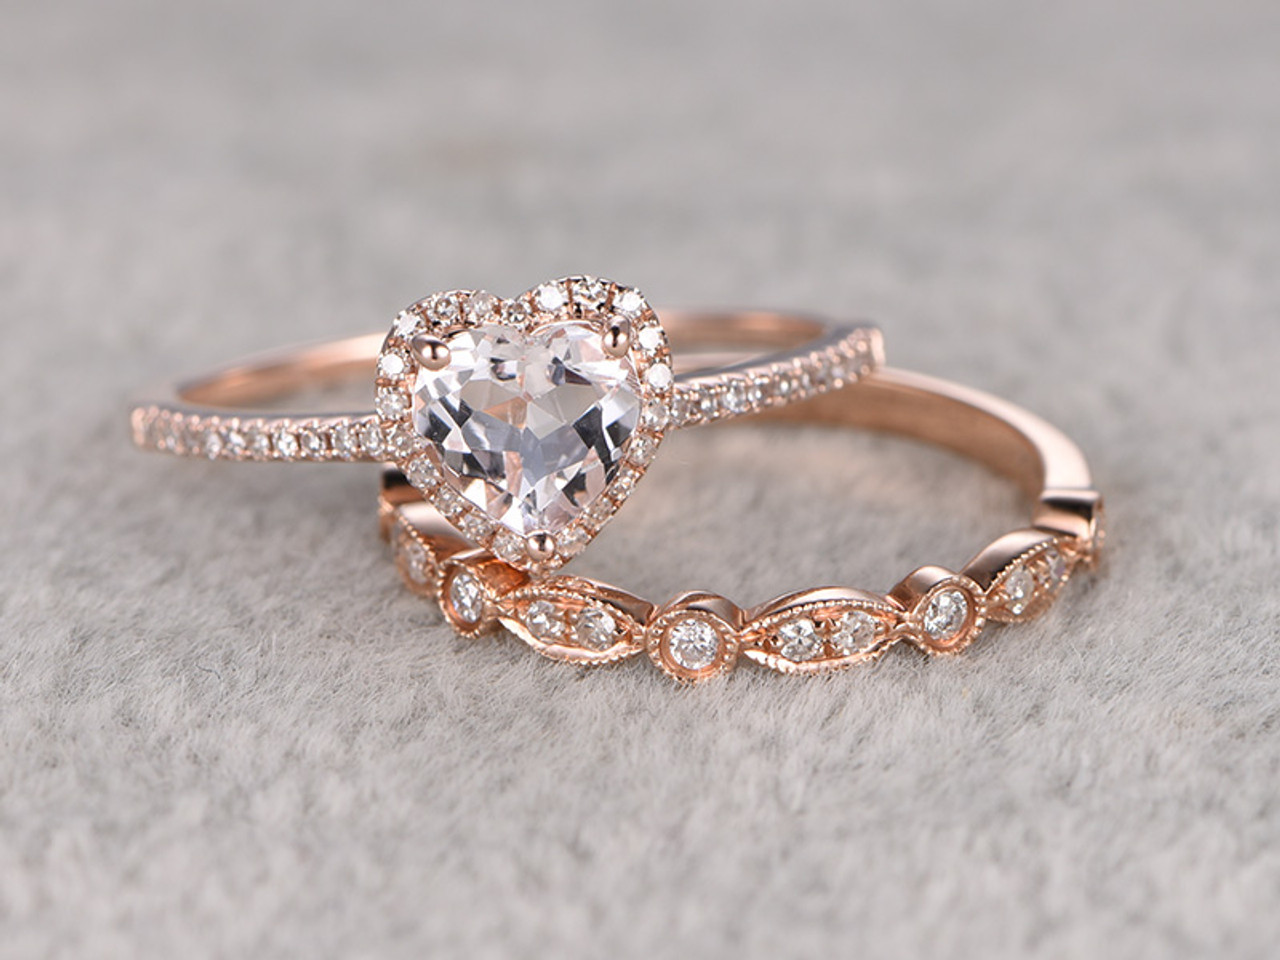 6mm Heart Shaped Morganite Wedding Set Diamond Bridal Ring 14k Rose Gold  Marquise Matching Band